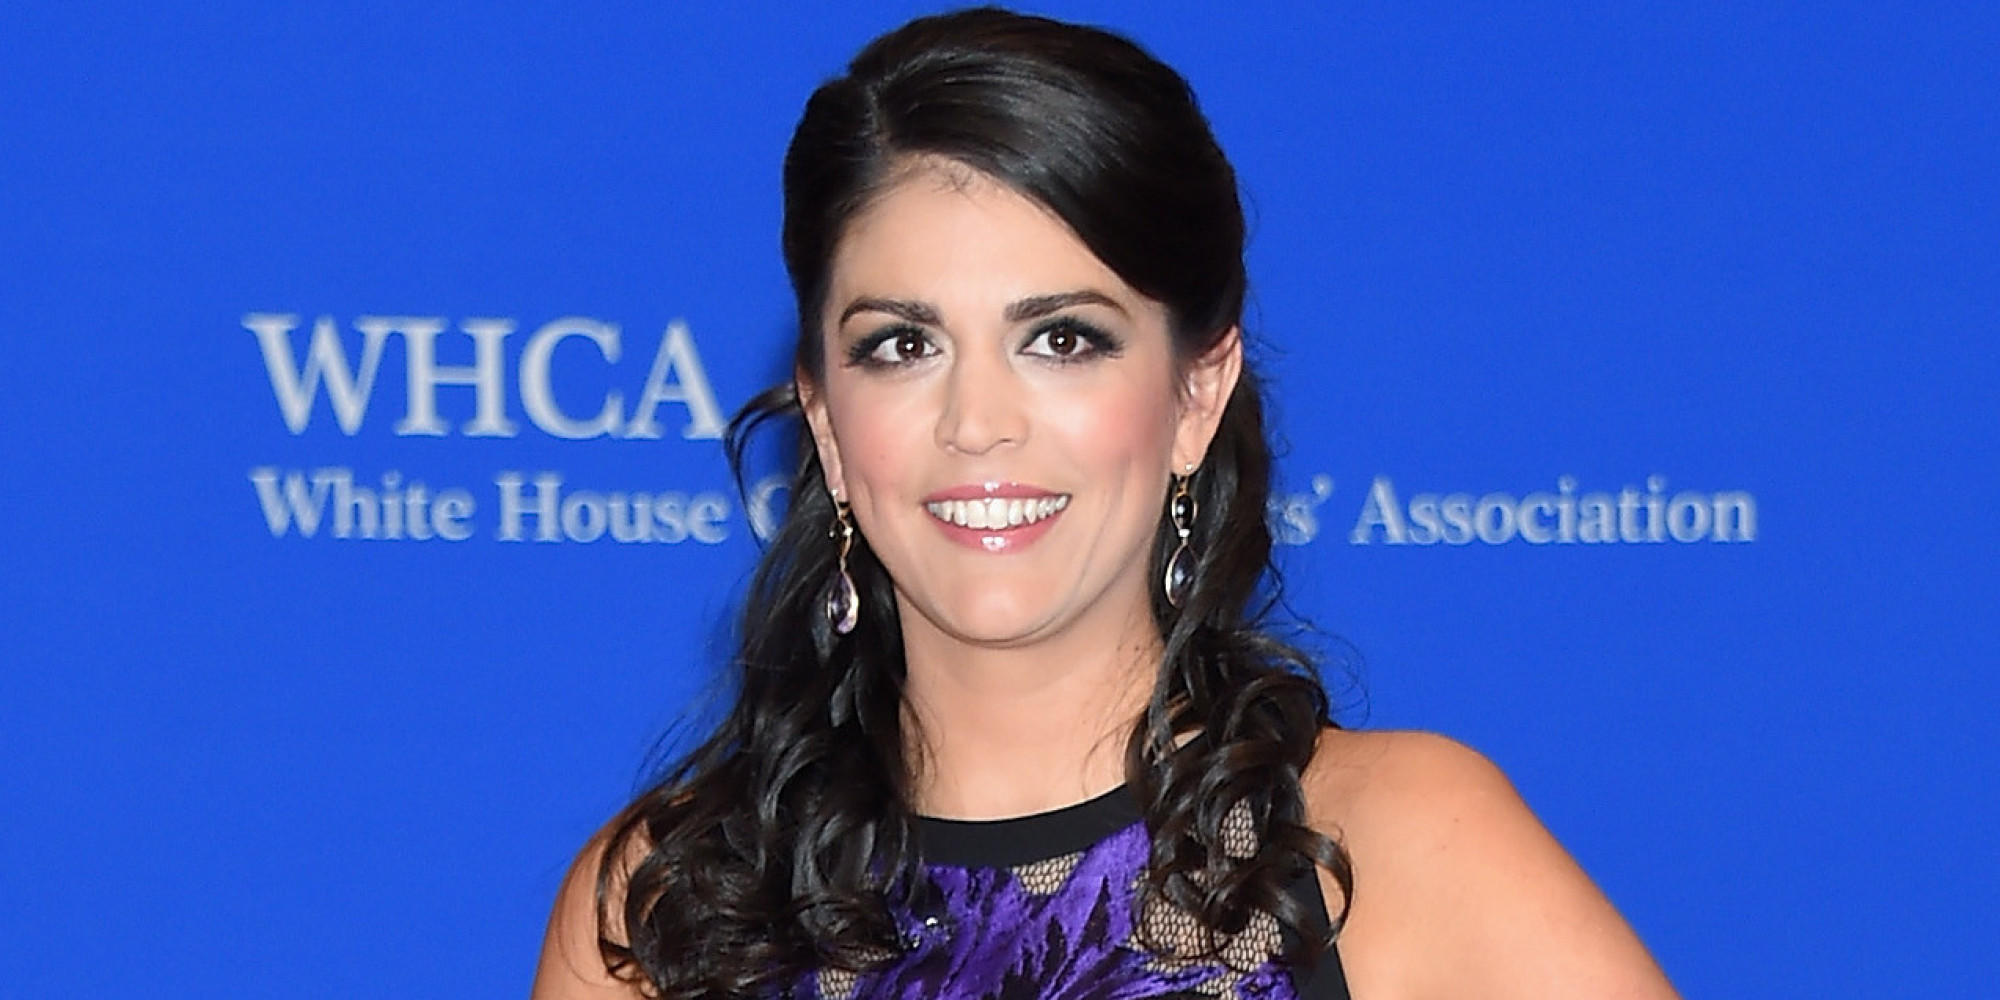 cecily strong parentscecily strong snl, cecily strong boyfriend, cecily strong melania trump, cecily strong imdb, cecily strong parents, cecily strong correspondents dinner speech, cecily strong biography, cecily strong wiki, cecily strong married, cecily strong actress, cecily strong stand up, cecily strong melania, cecily strong italian